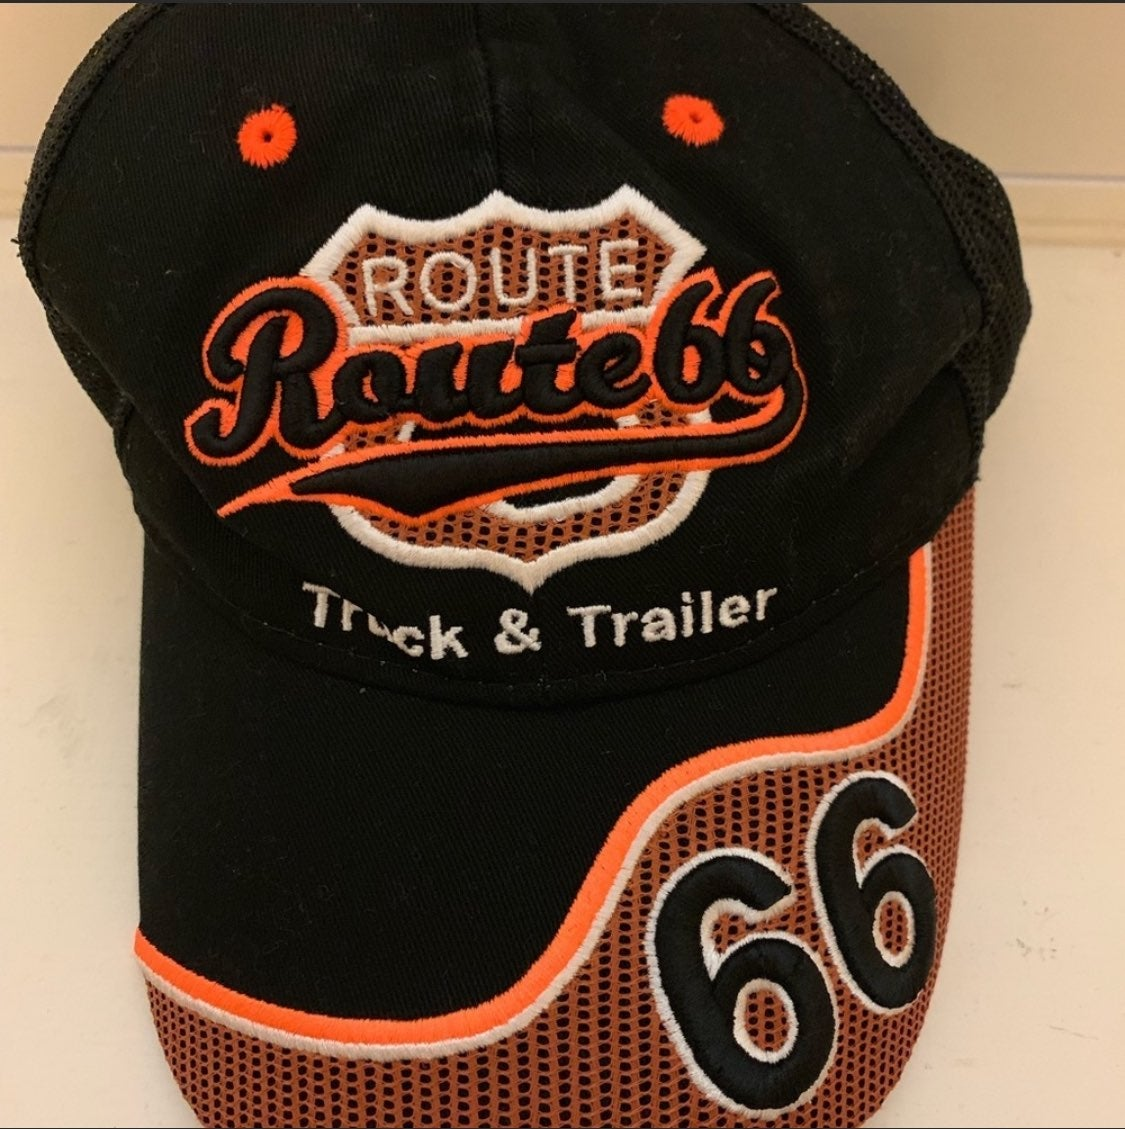 Route 66 truck & trailer cap